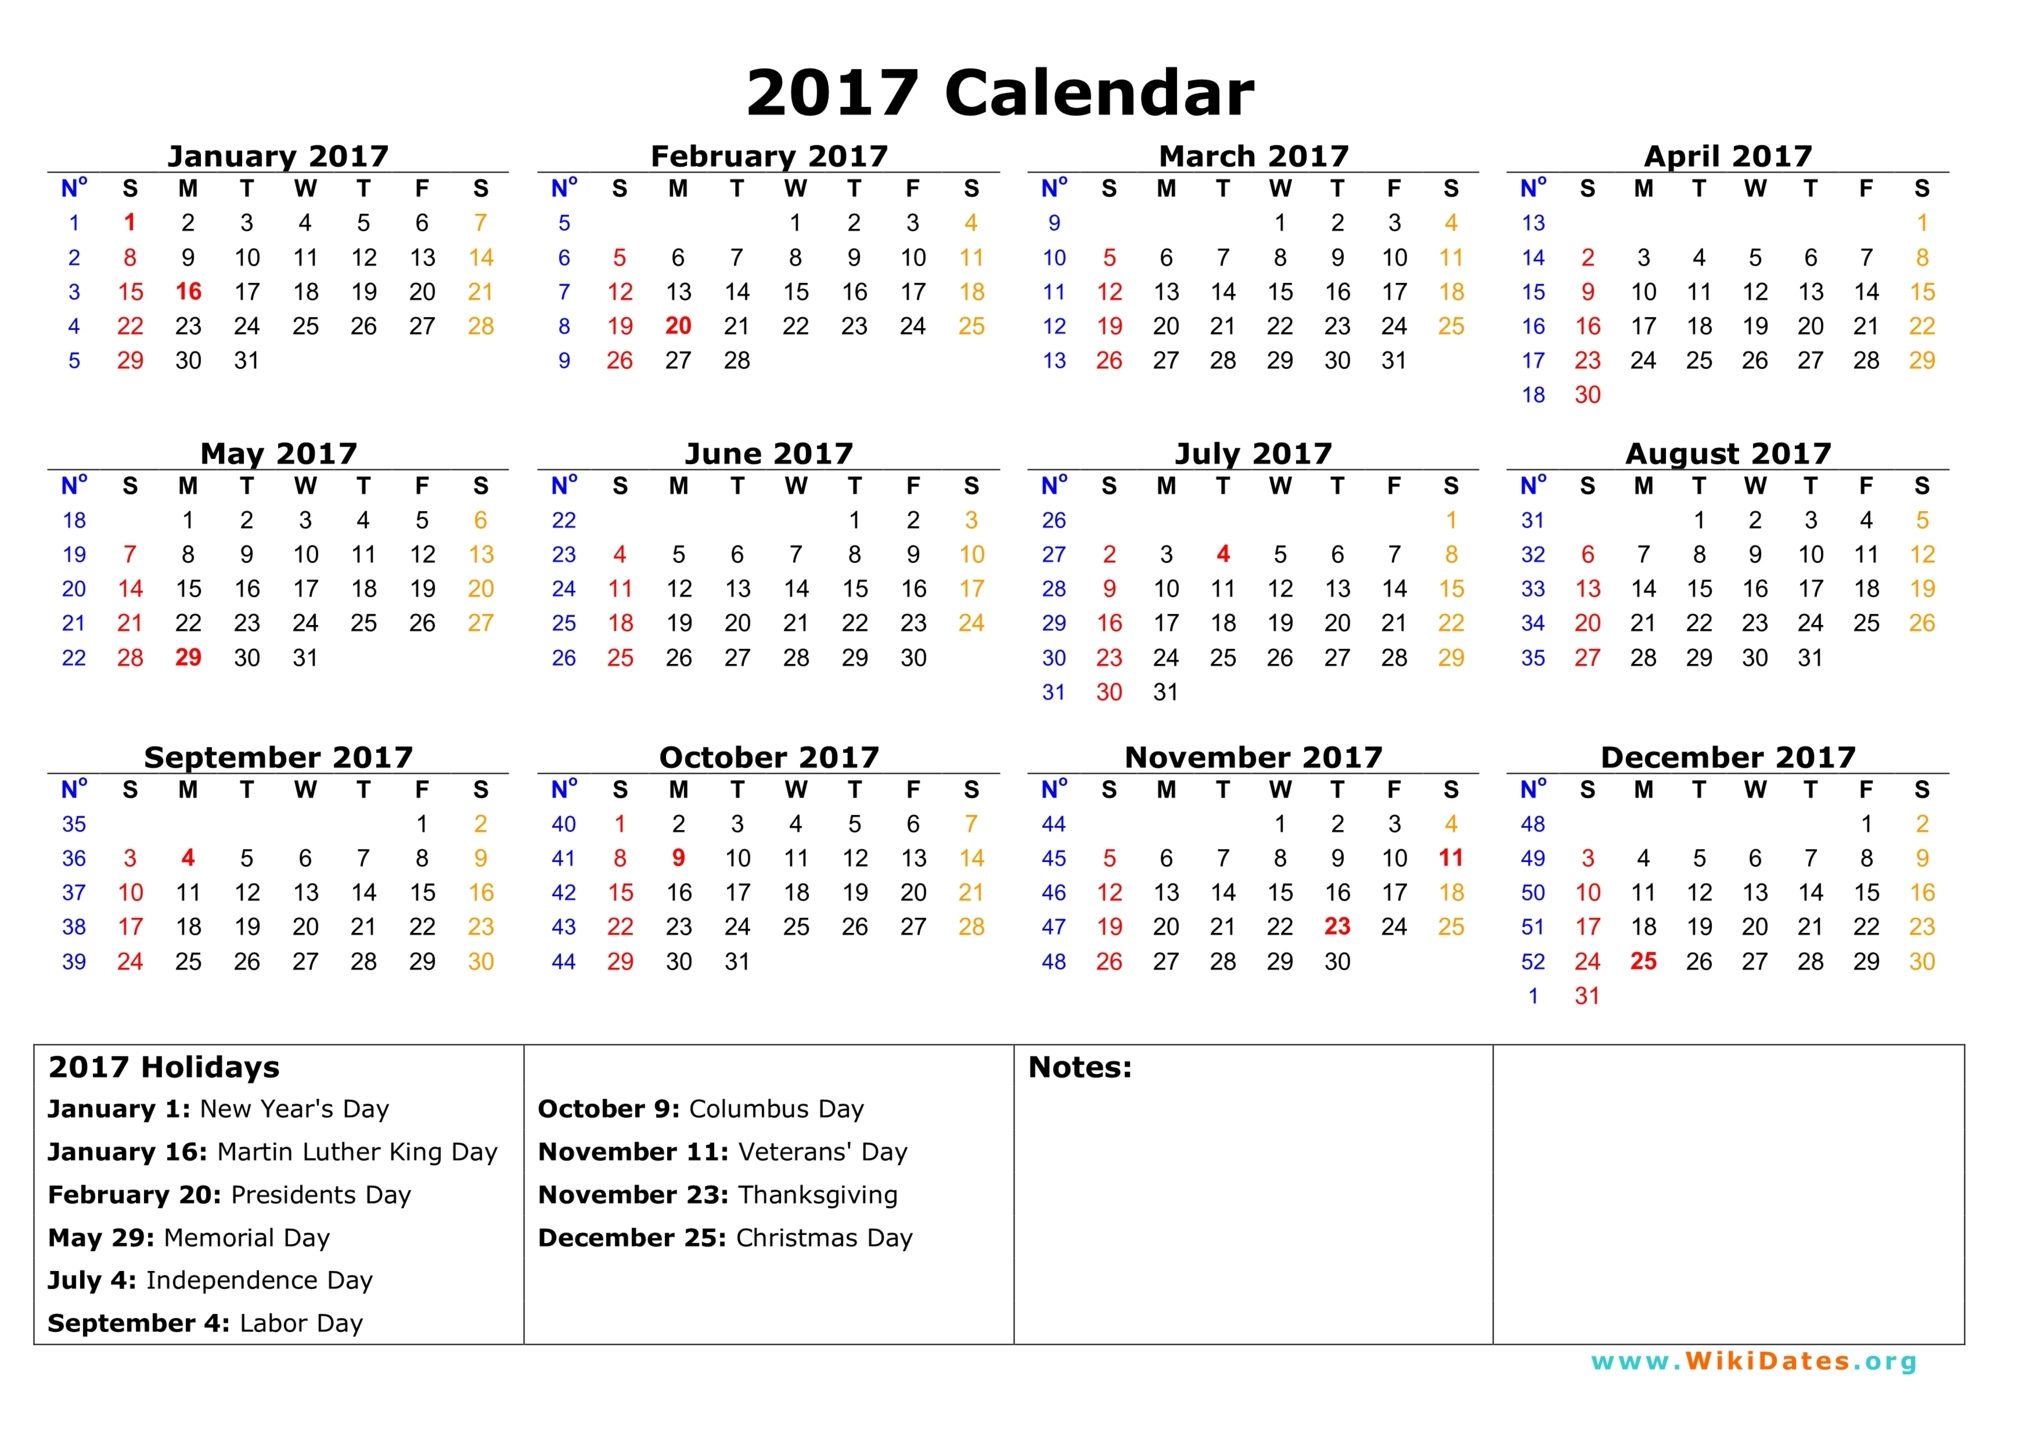 August 2017 Calendar Printable With Holidays | yearly ...